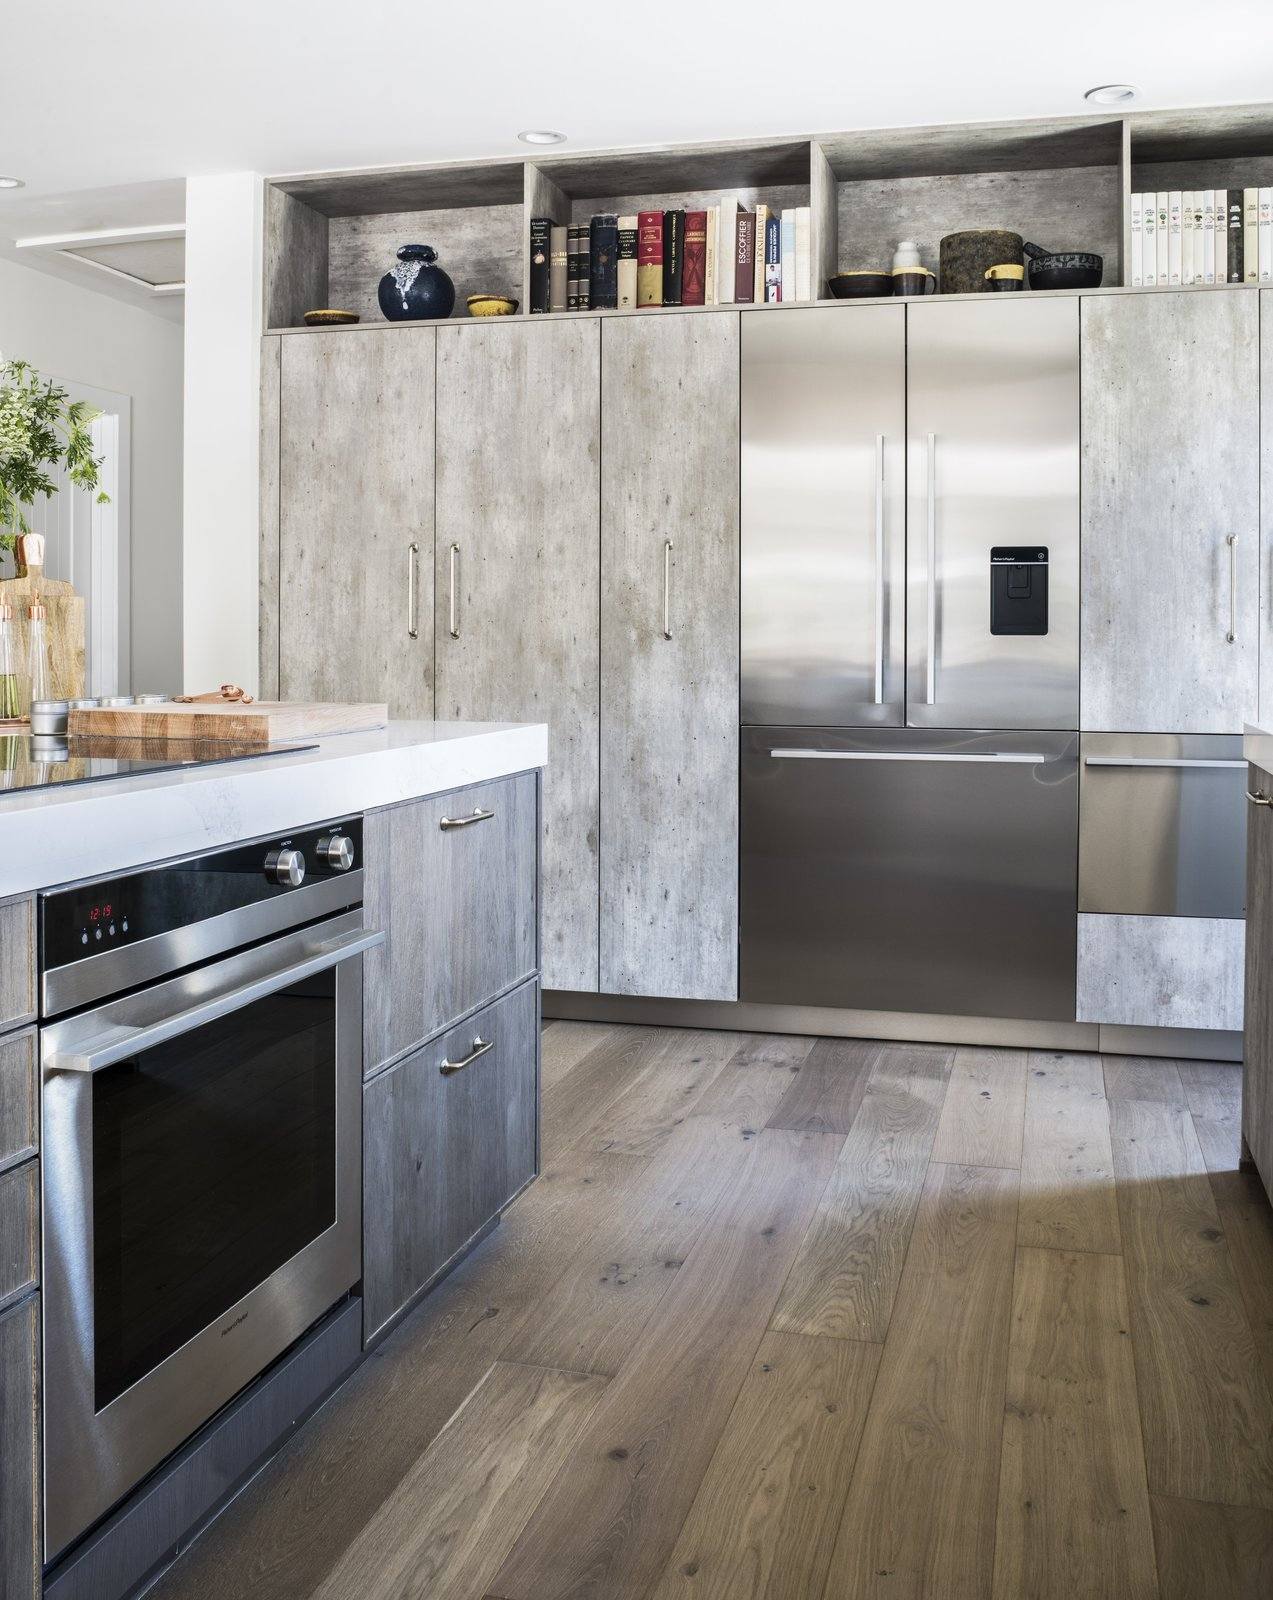 The Built-In French Door Refrigerator by Fisher & Paykel is seamlessly integrated with the kitchen cabinetry. ActiveSmart Foodcare monitors how the family uses the fridge to maintain a controlled climate and keep food fresh. Beside the fridge, the CoolDrawer provides flexibility with 5 temperature settings: freezer, chill, fridge, pantry, and wine modes.